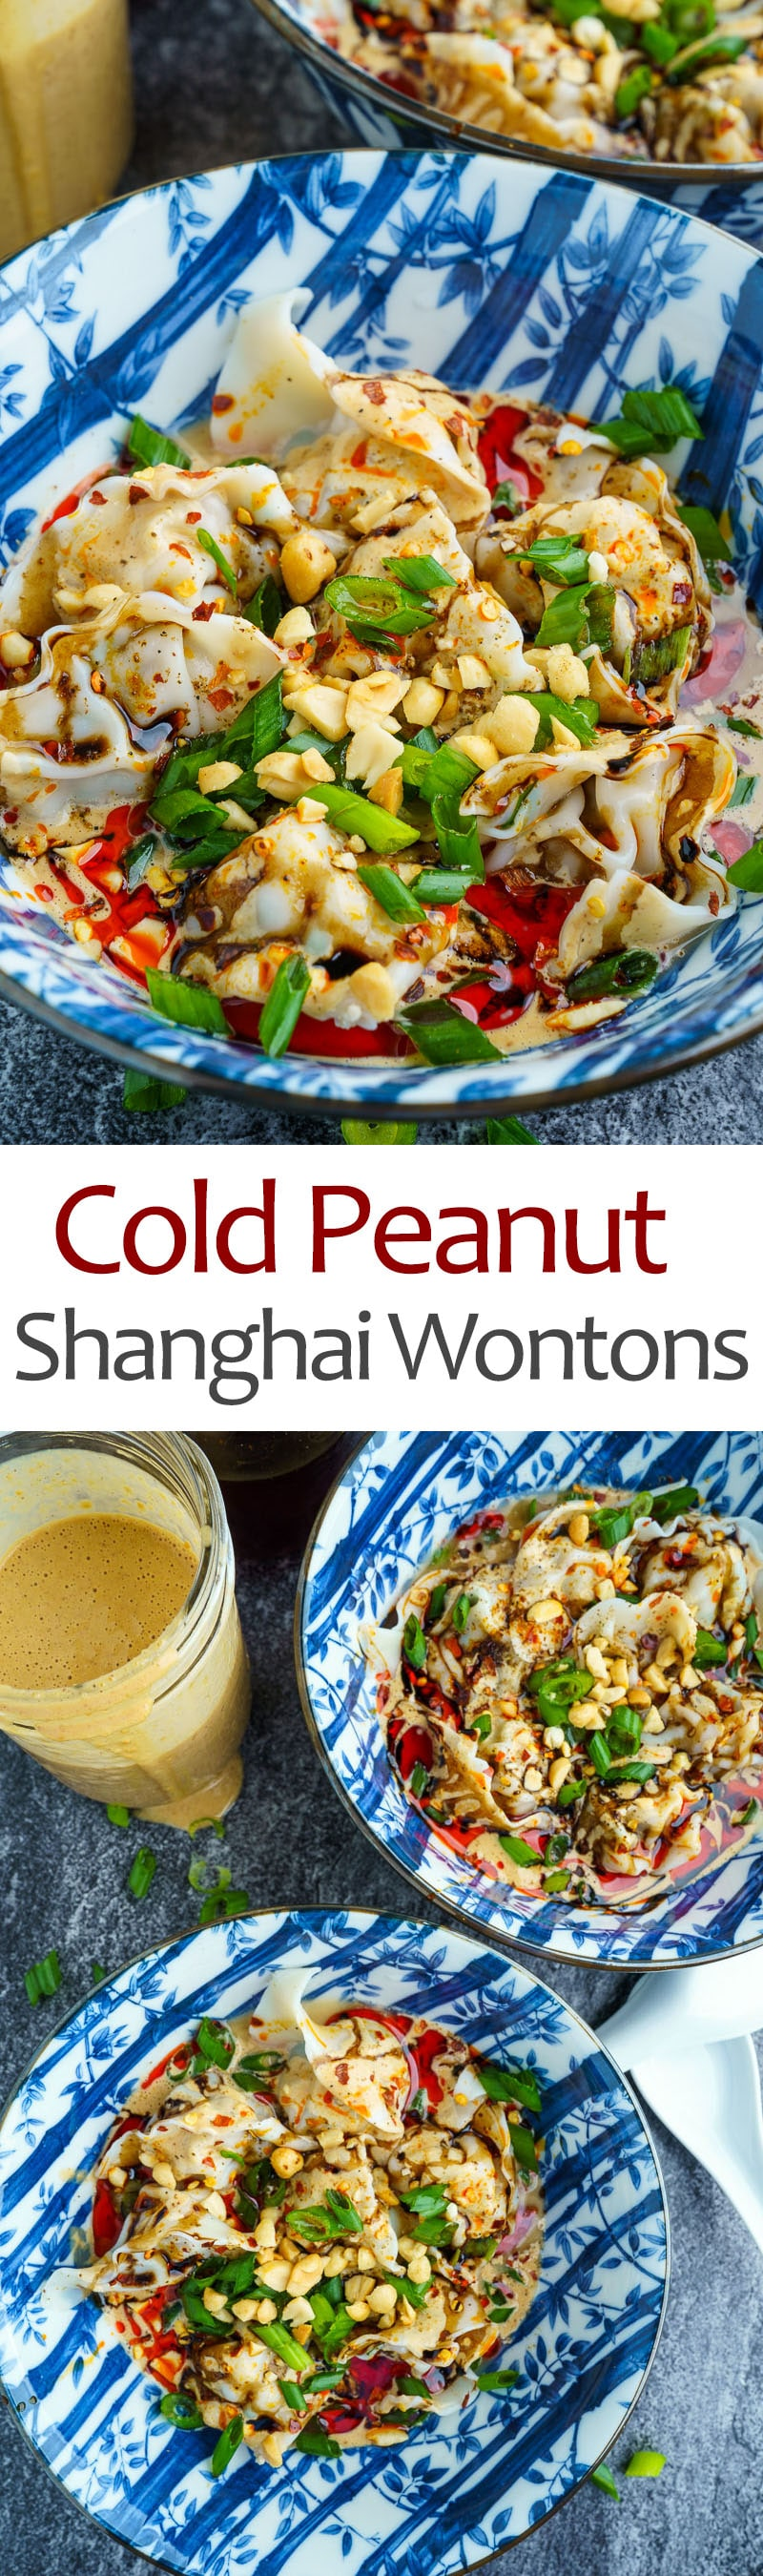 Cold Shanghai Wontons in Peanut Sauce and Chili Oil